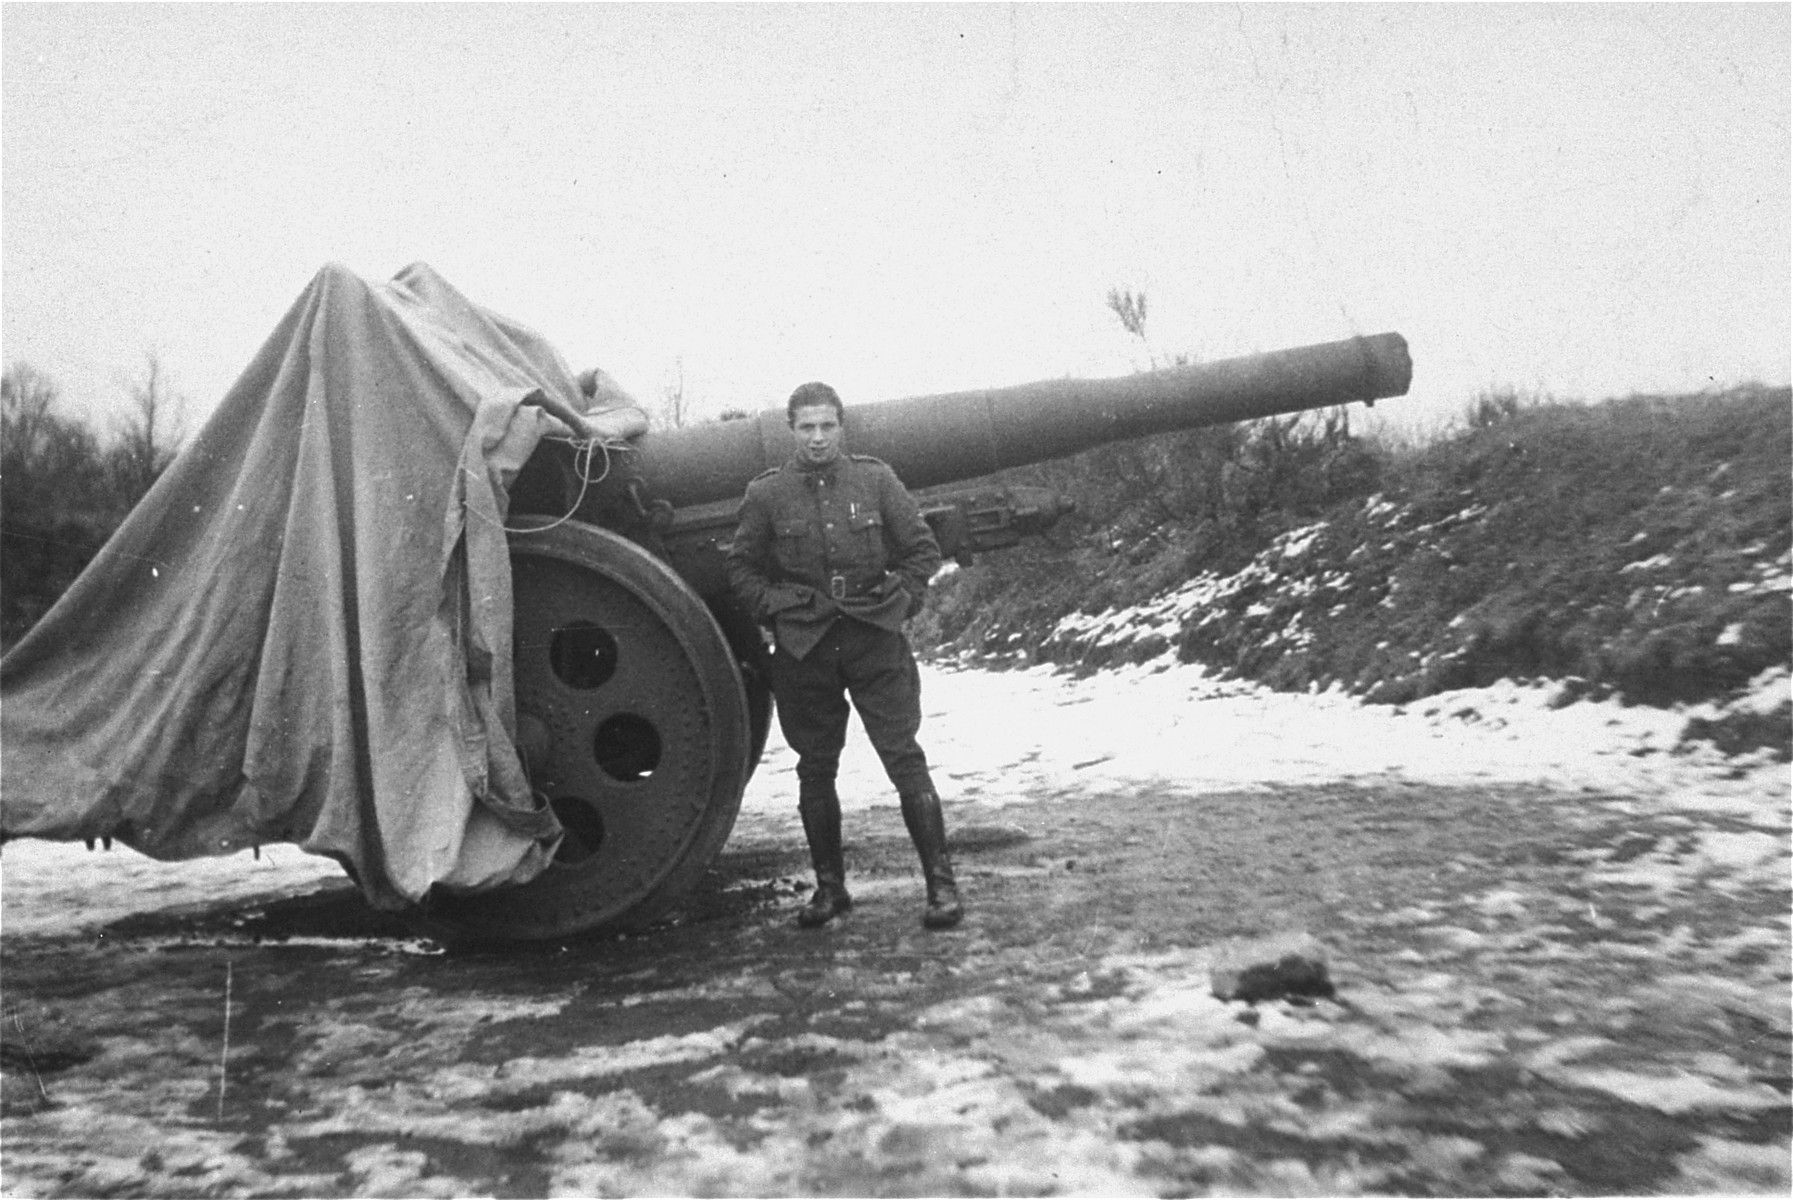 A Jewish soldier in the Belgian army poses next to a piece of artillery.  Pictured is Willem Friedman.